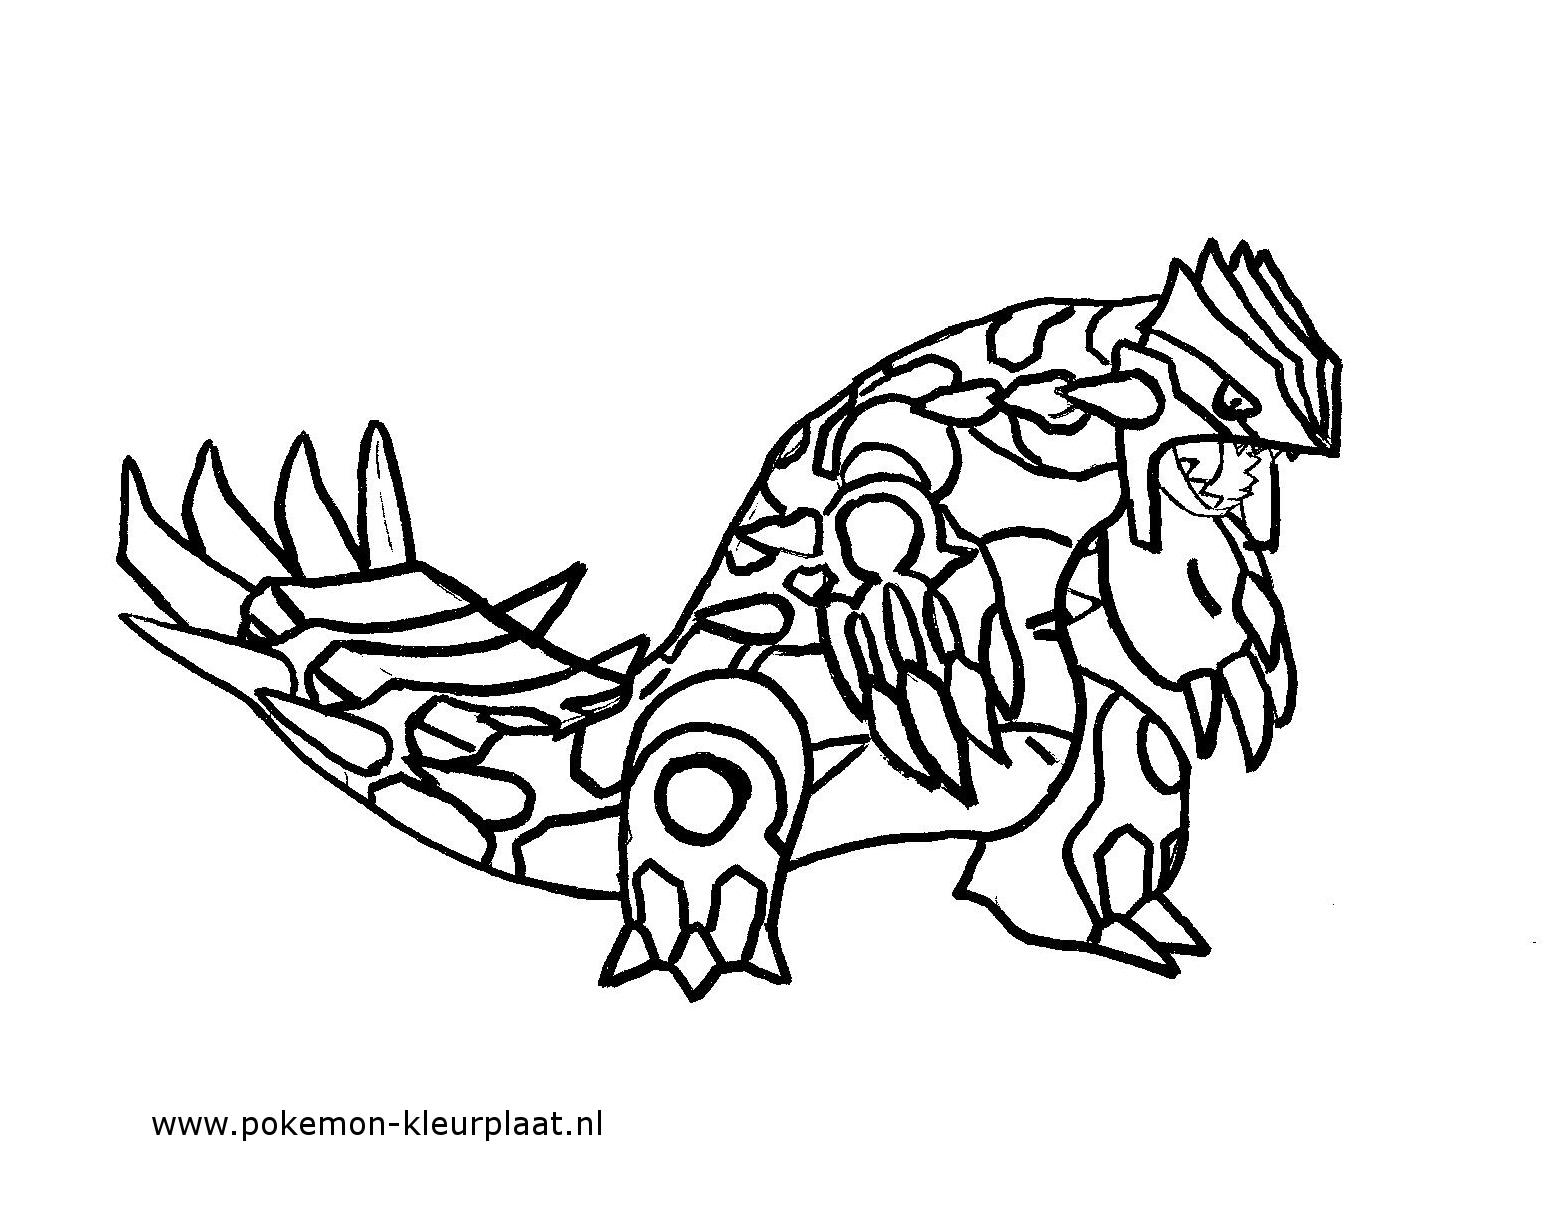 Ausmalbilder Pokemon Blitza : 100 Pokemon Coloring Pages Entei Angry Birds Coloring Pages